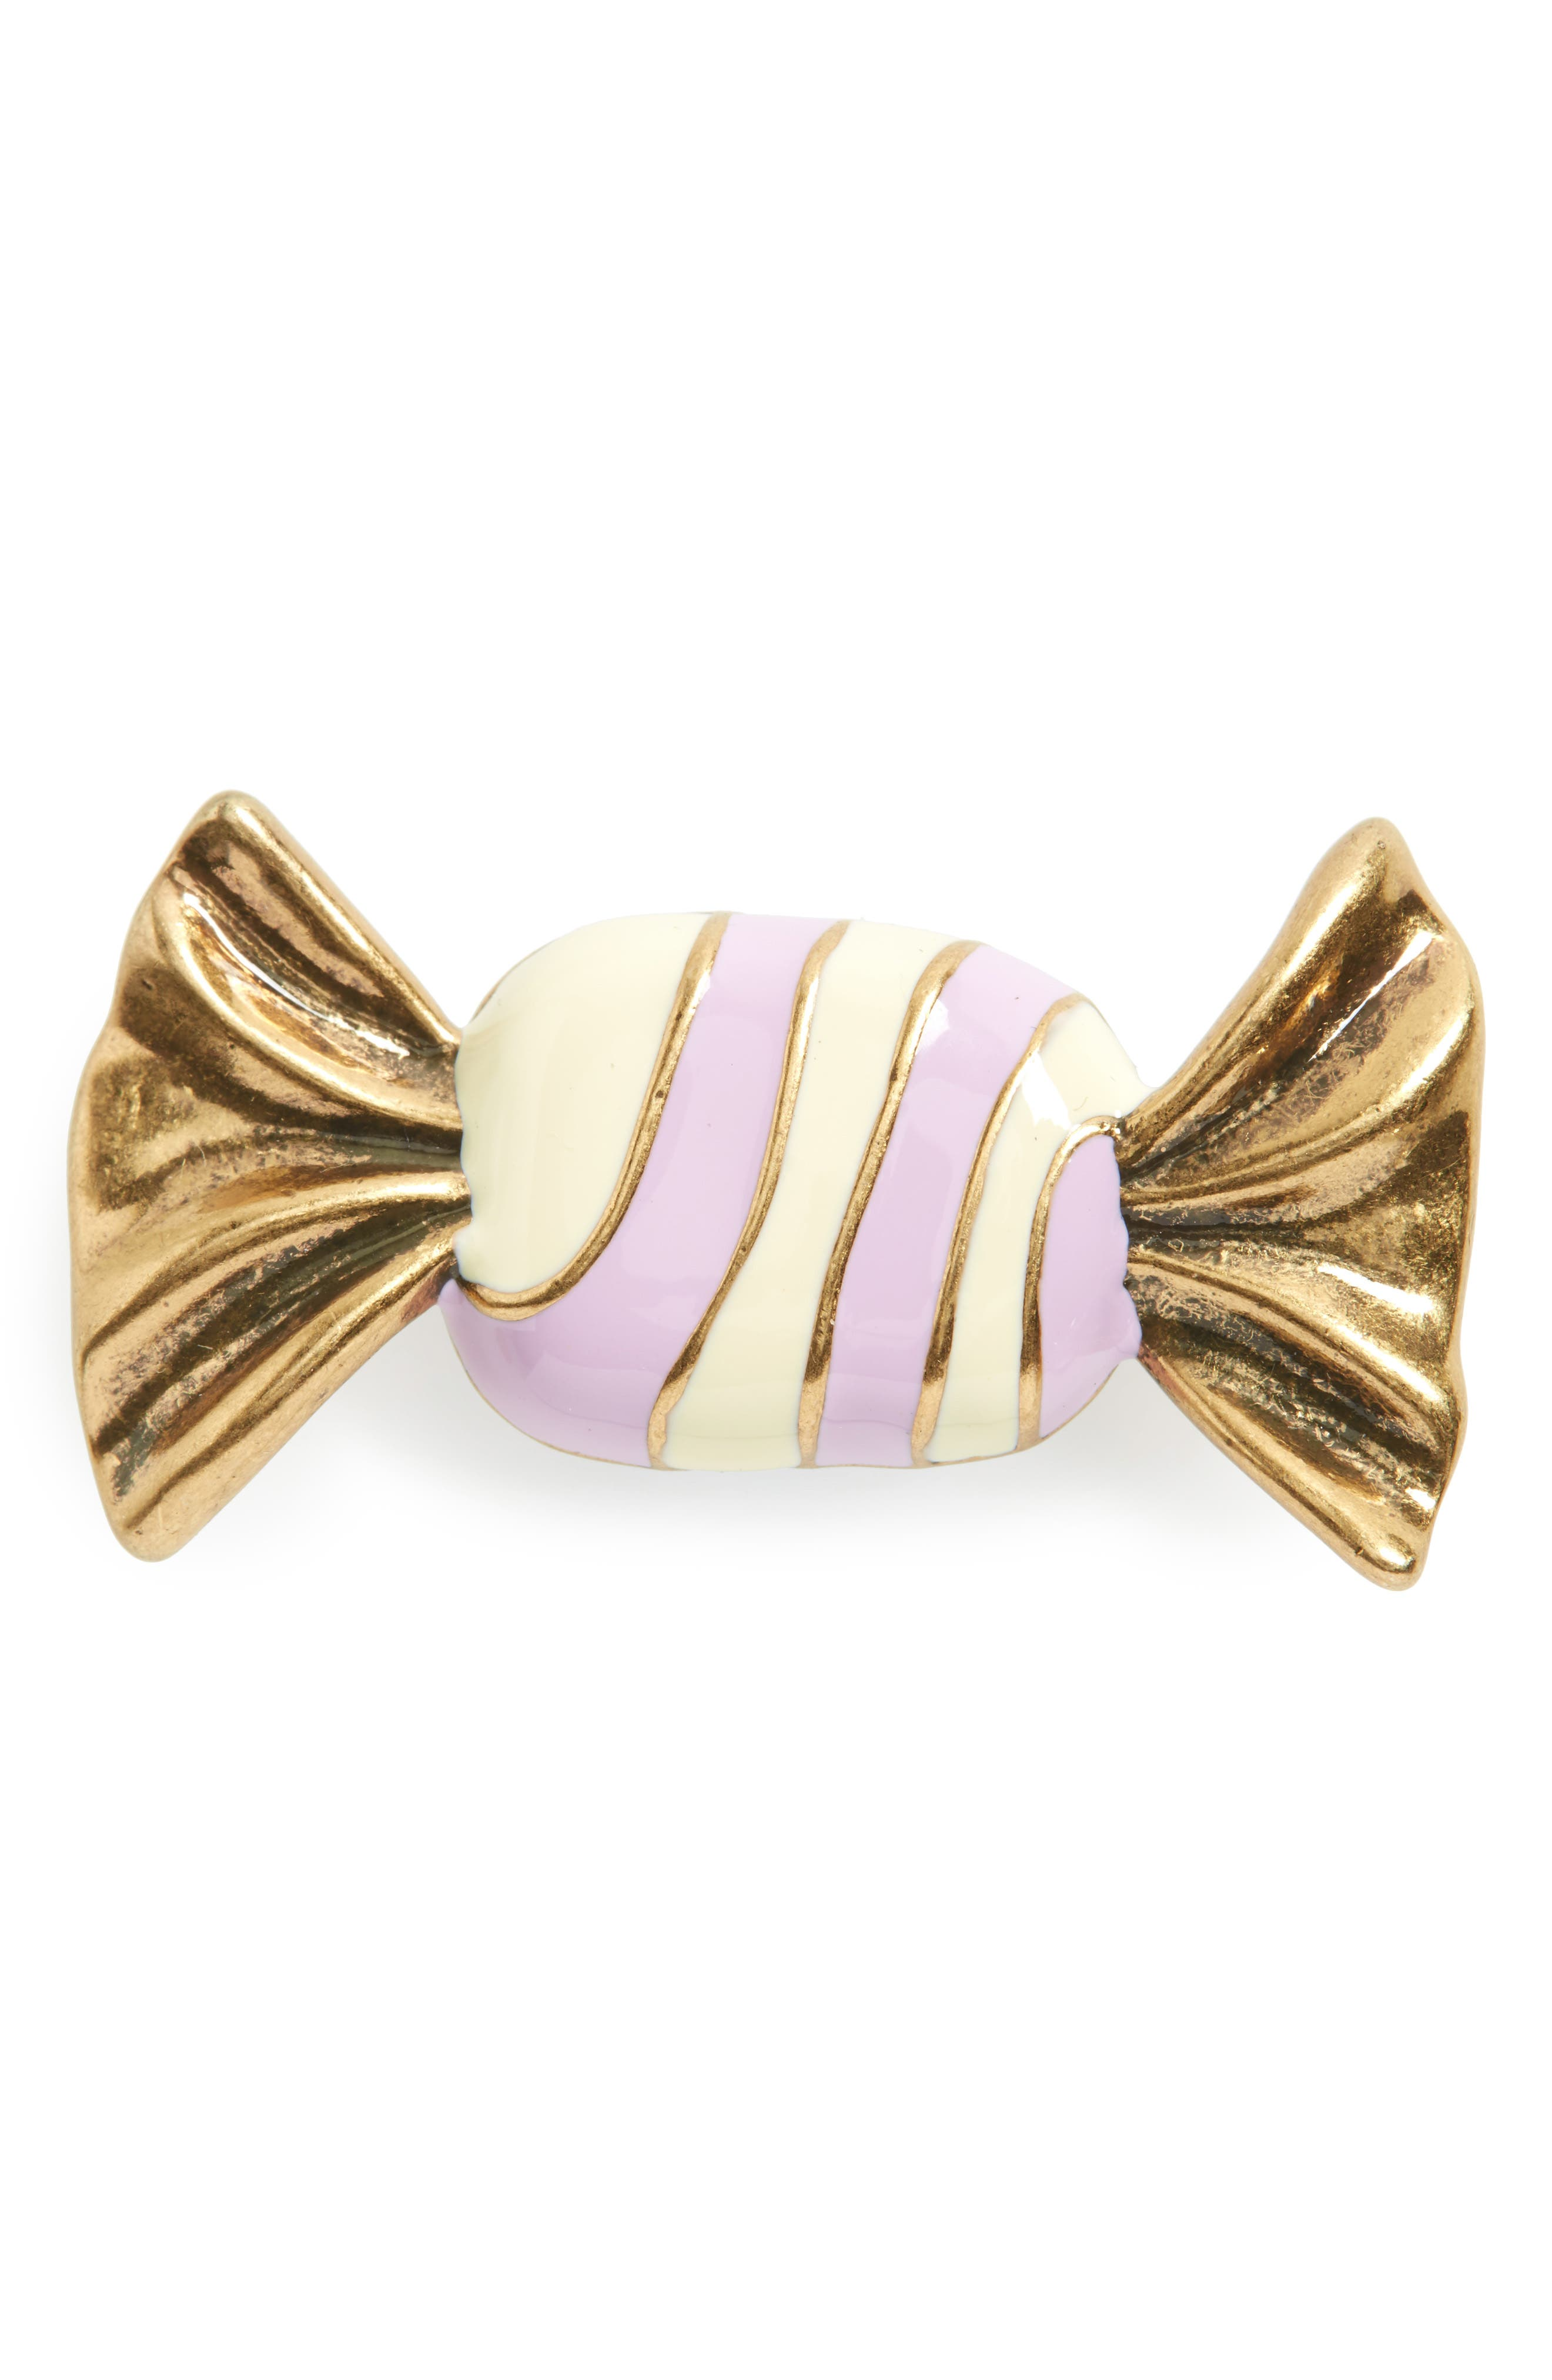 MARC JACOBS Candy Brooch